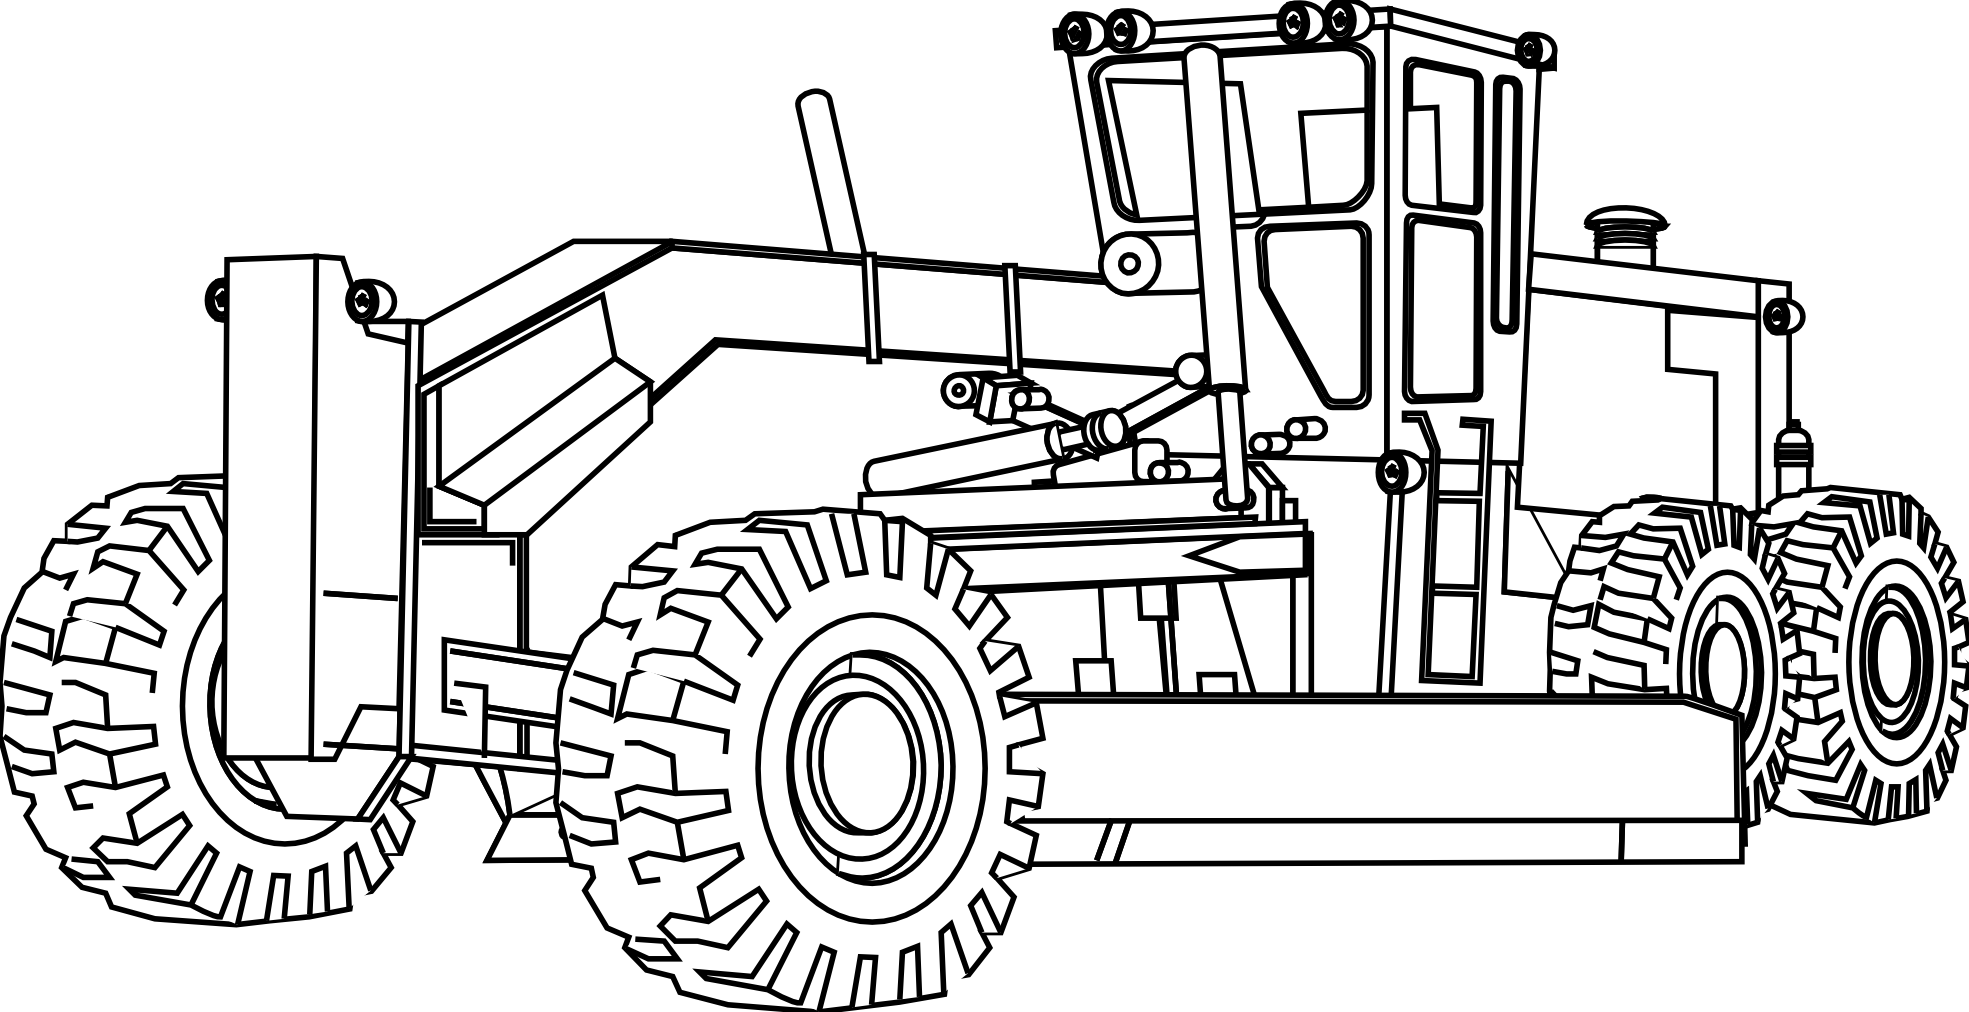 printable tractor coloring pages craftsactvities and worksheets for preschooltoddler and printable pages tractor coloring